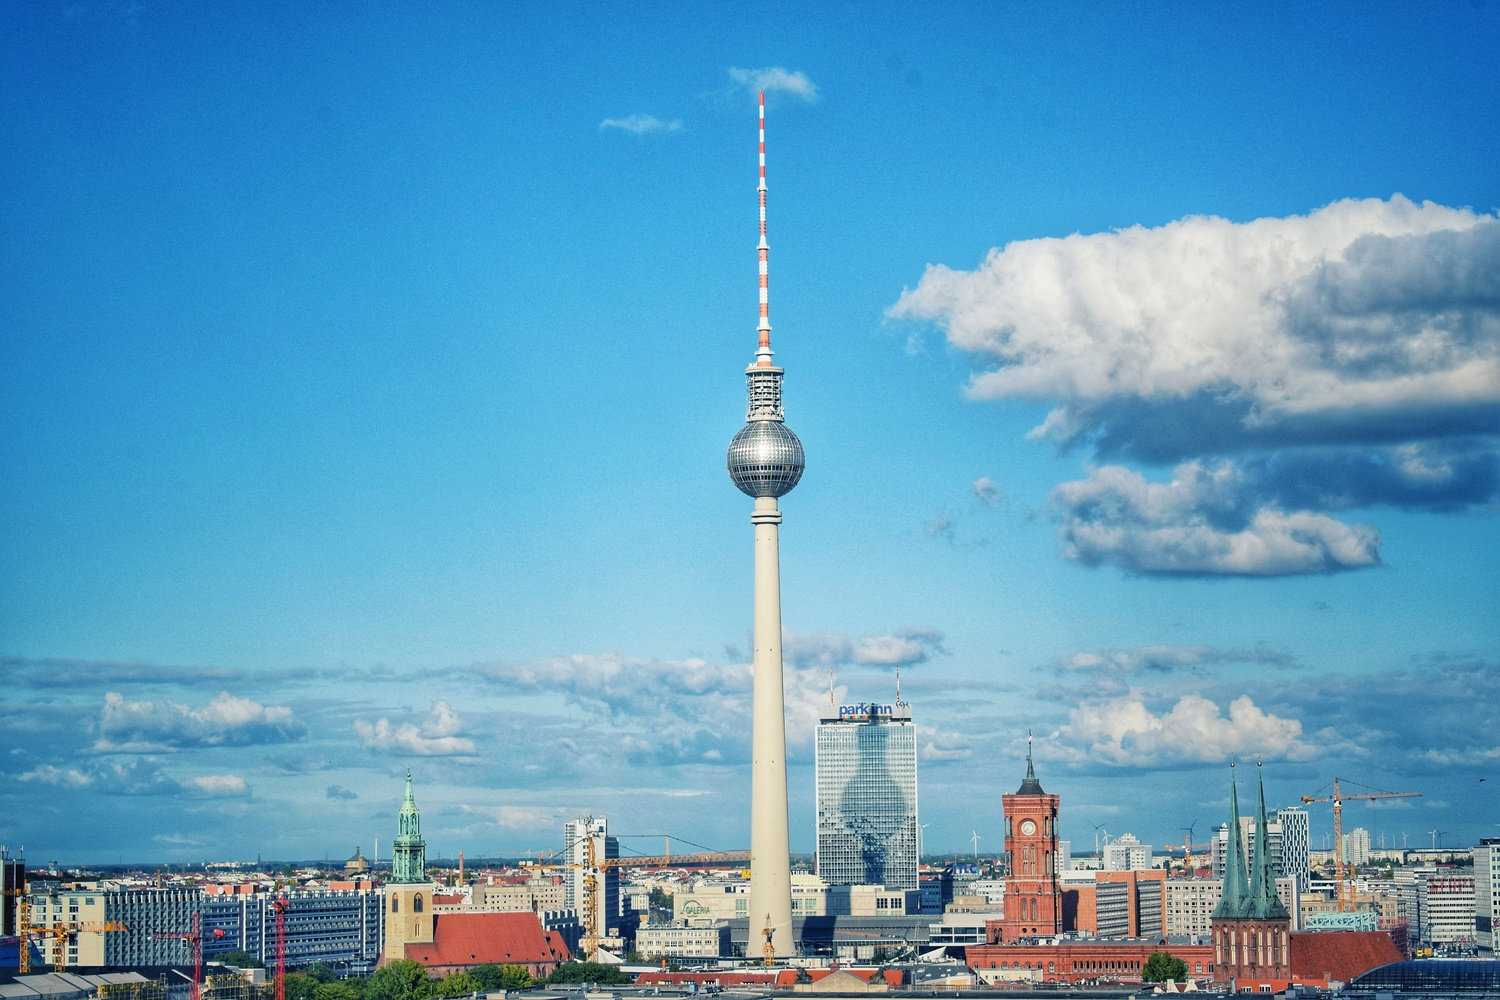 Balcongraphy - TV Tower in a sunny day by Mo Moghaddas